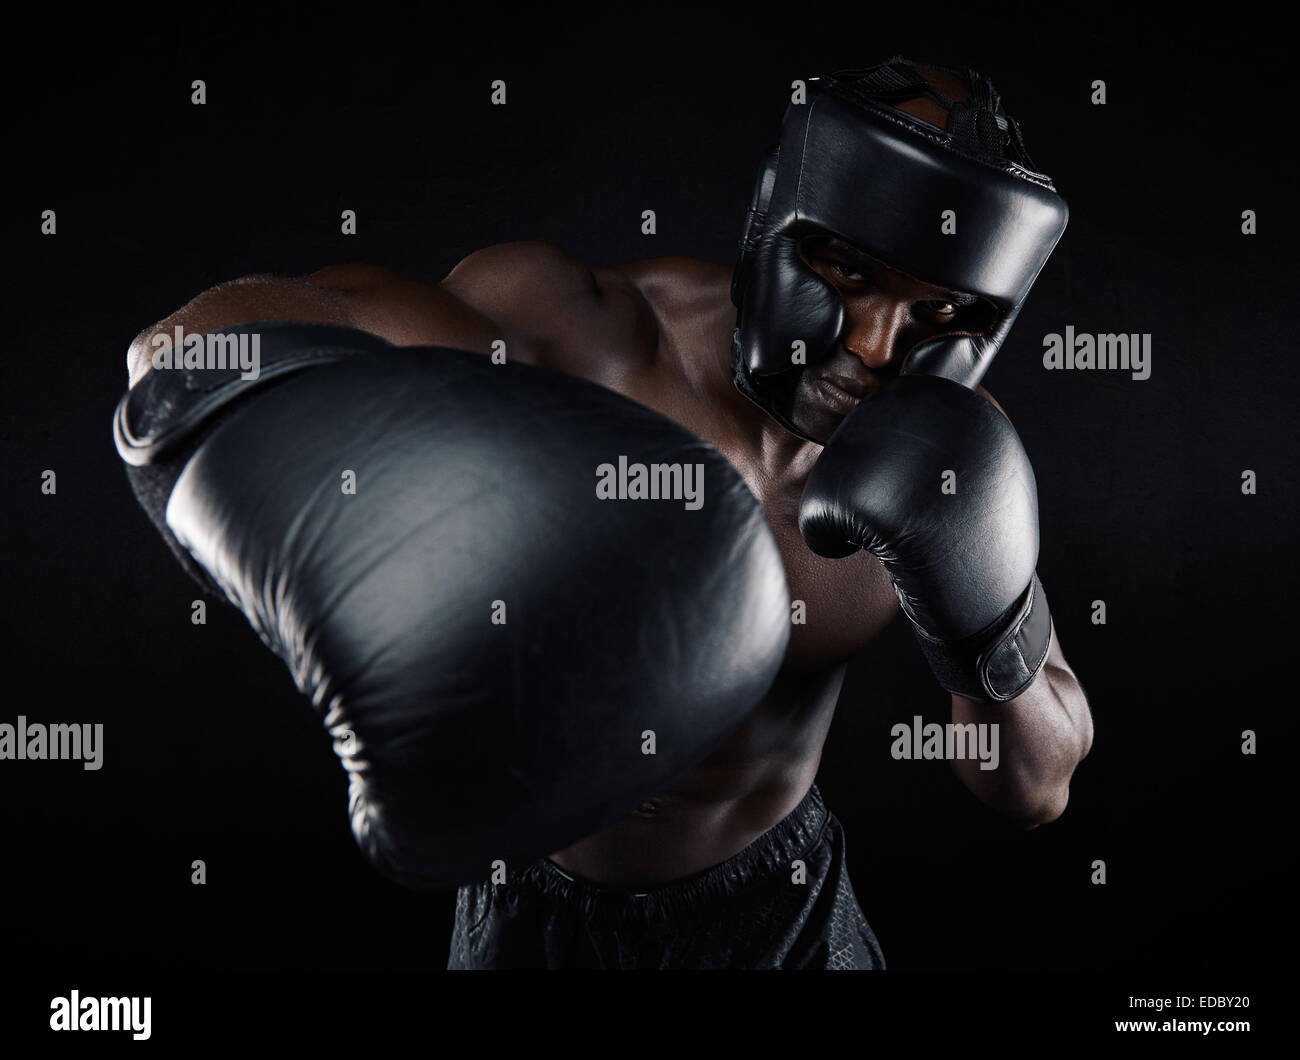 Portrait of young male practicing boxing against black background. African Male boxer throwing a punch in front. - Stock Image